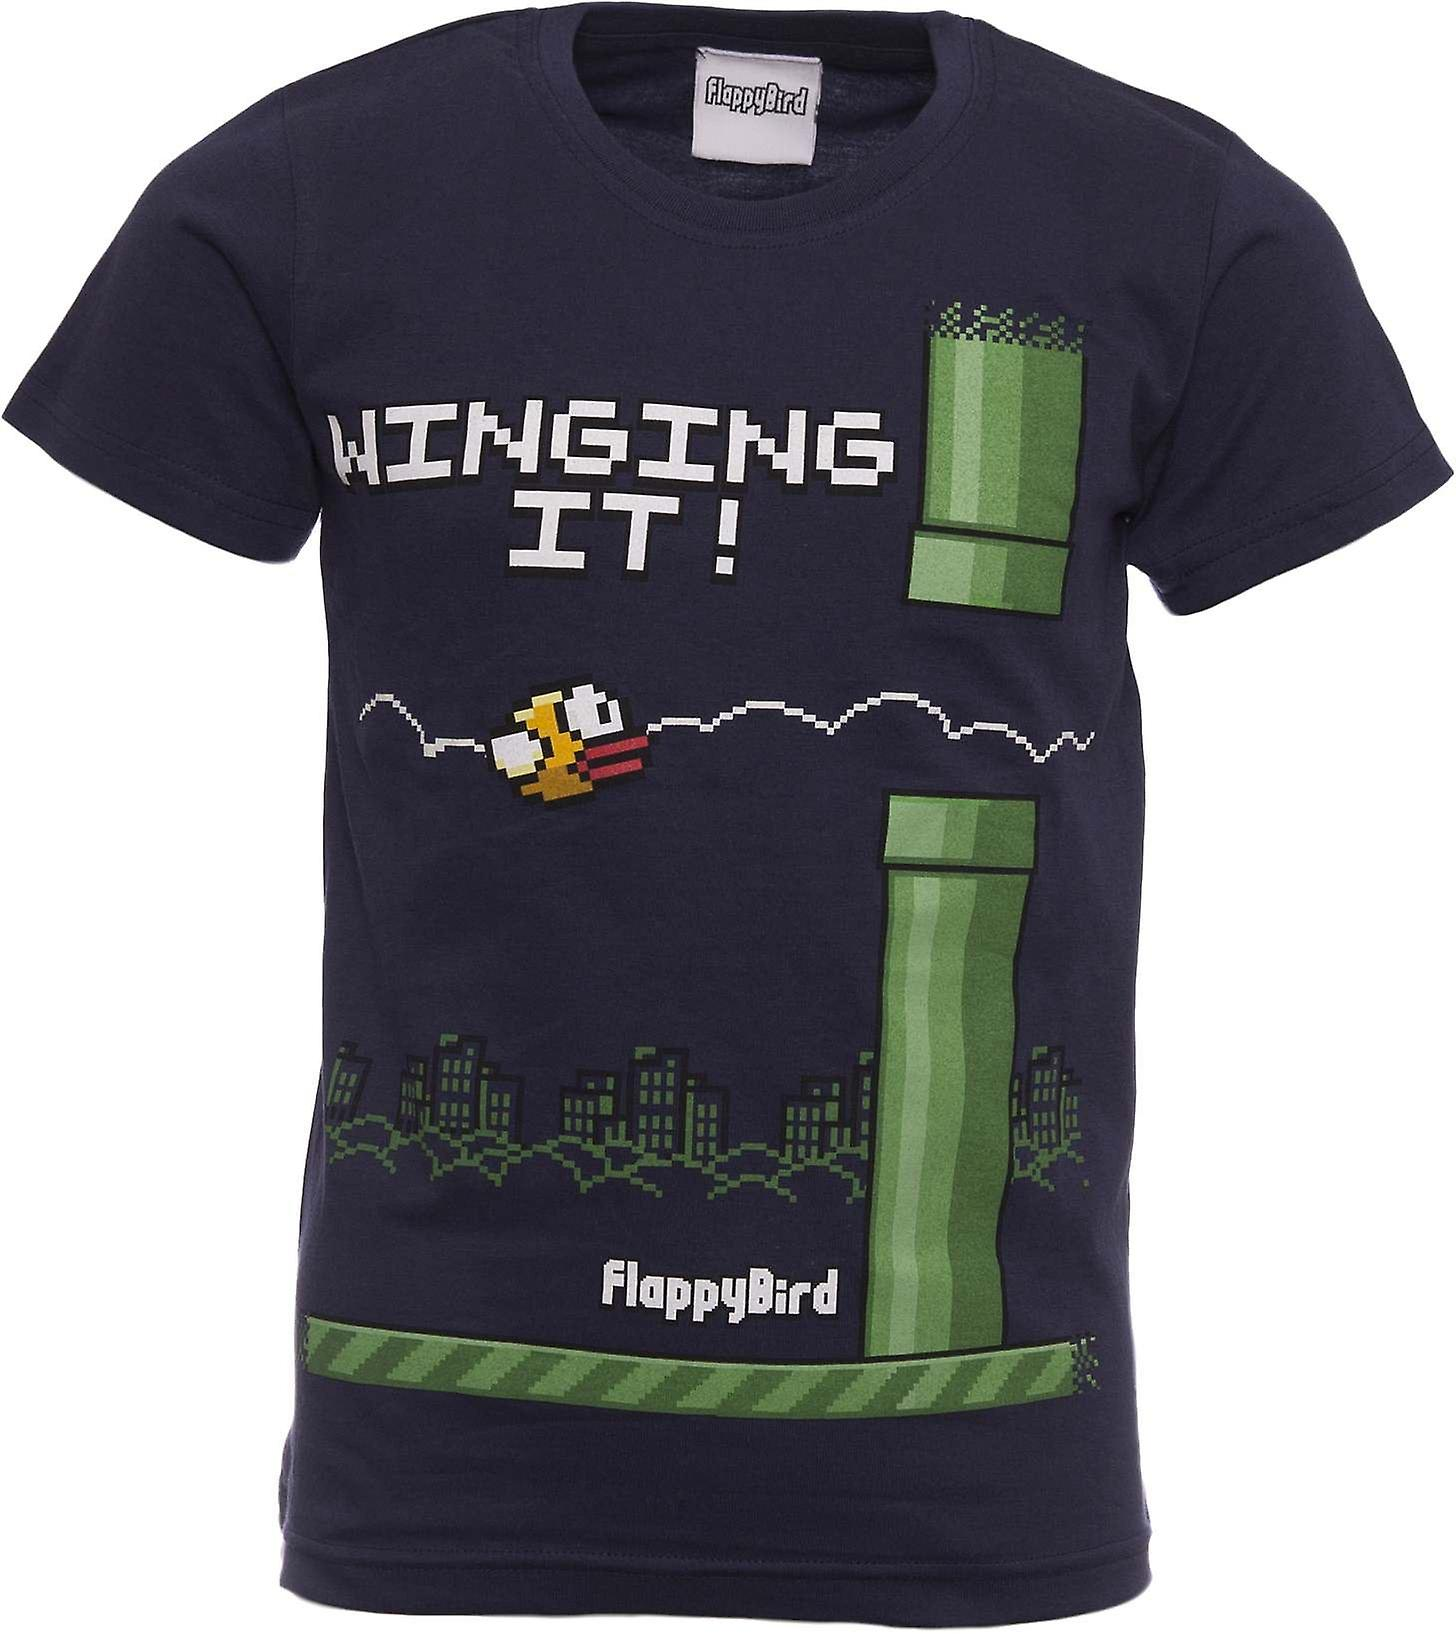 FLAPPY BIRD T-shirt   Official Shirt   WINGING IT   Youth   7-8   BLUE